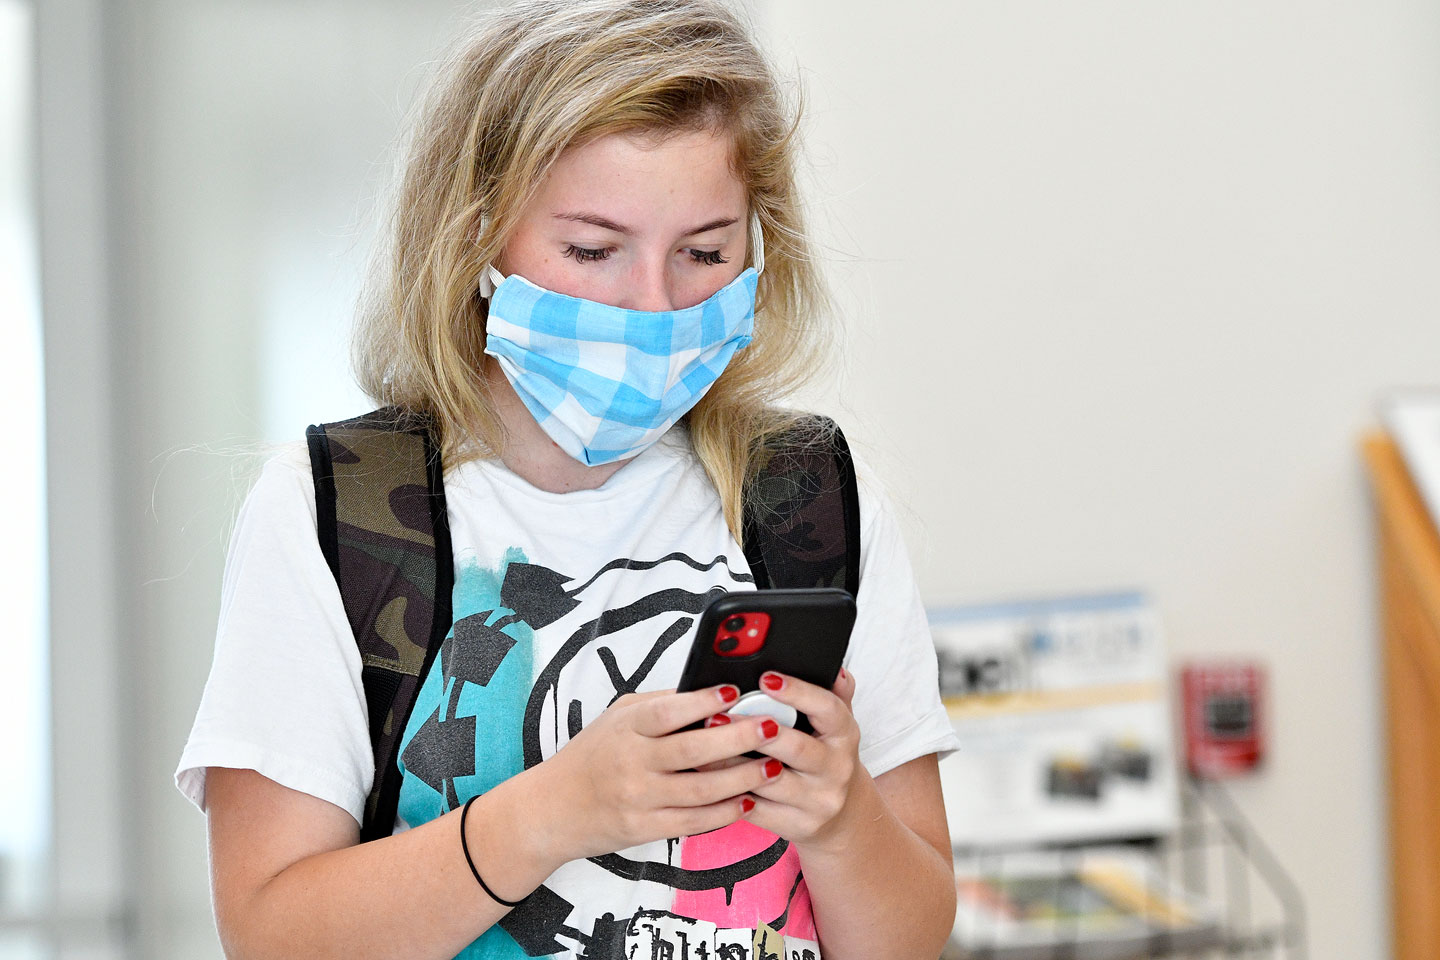 Student browses phone while wearing light blue mask